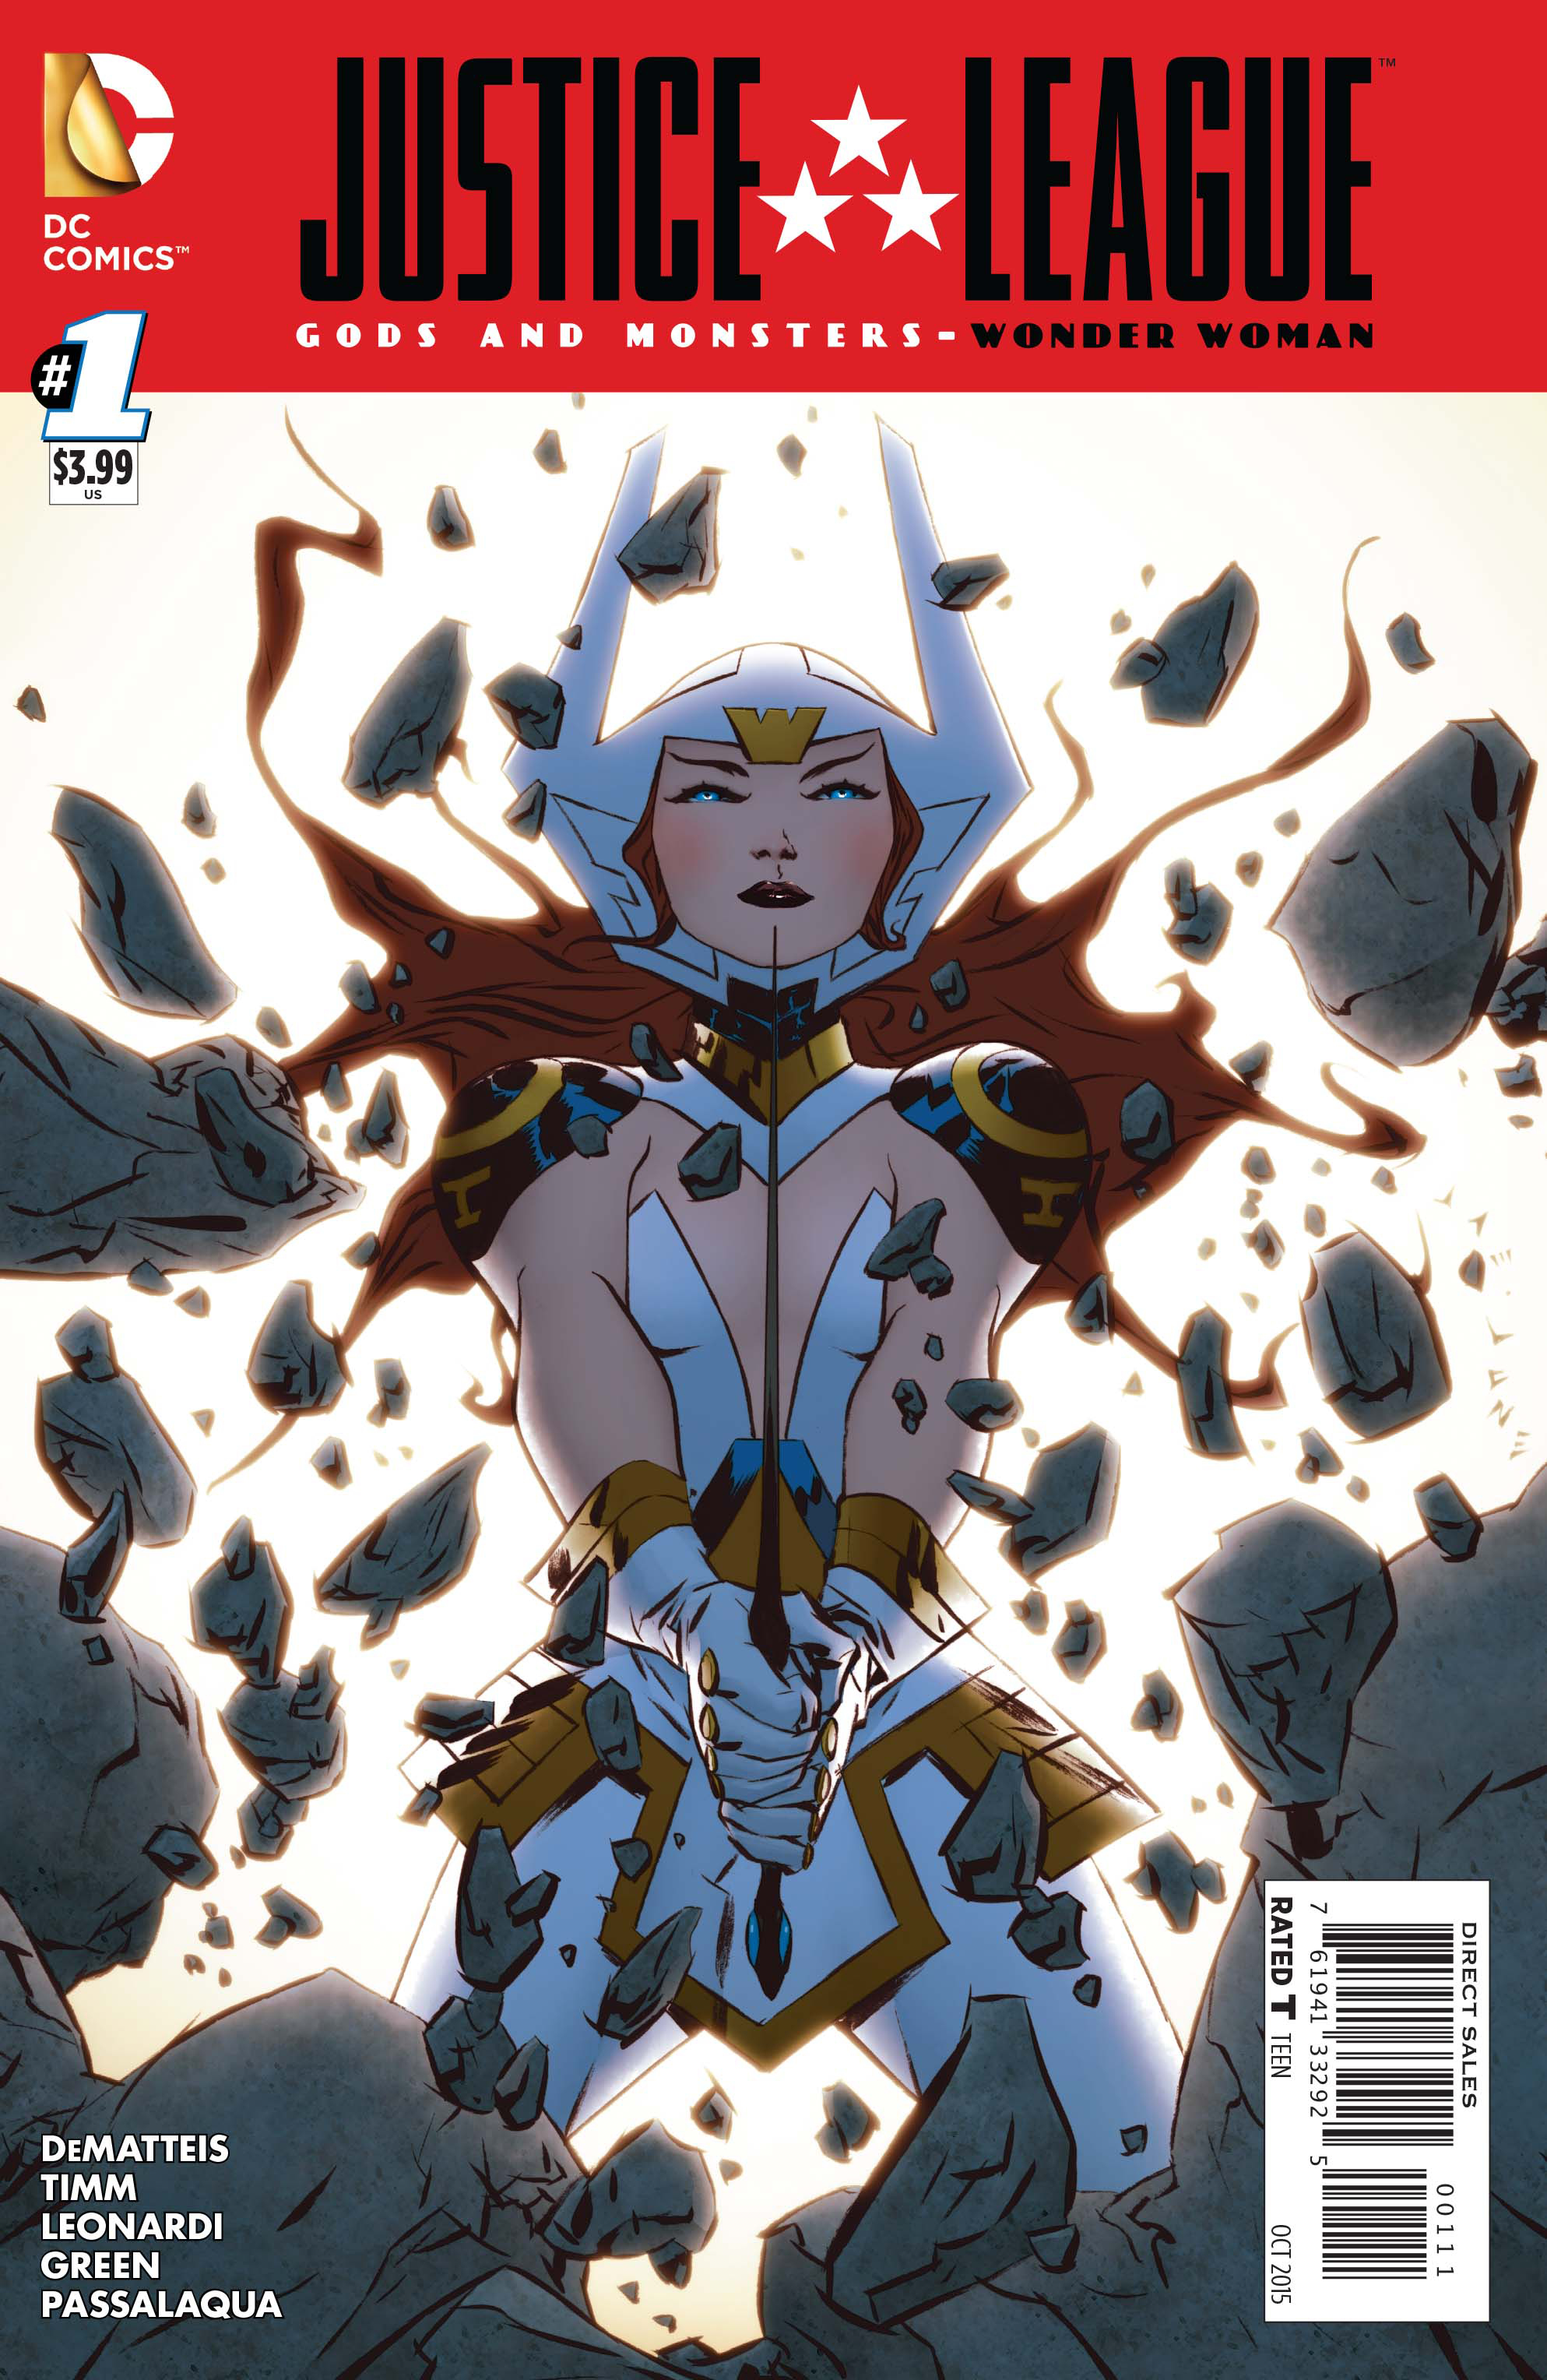 JLA GODS AND MONSTERS WONDER WOMAN #1